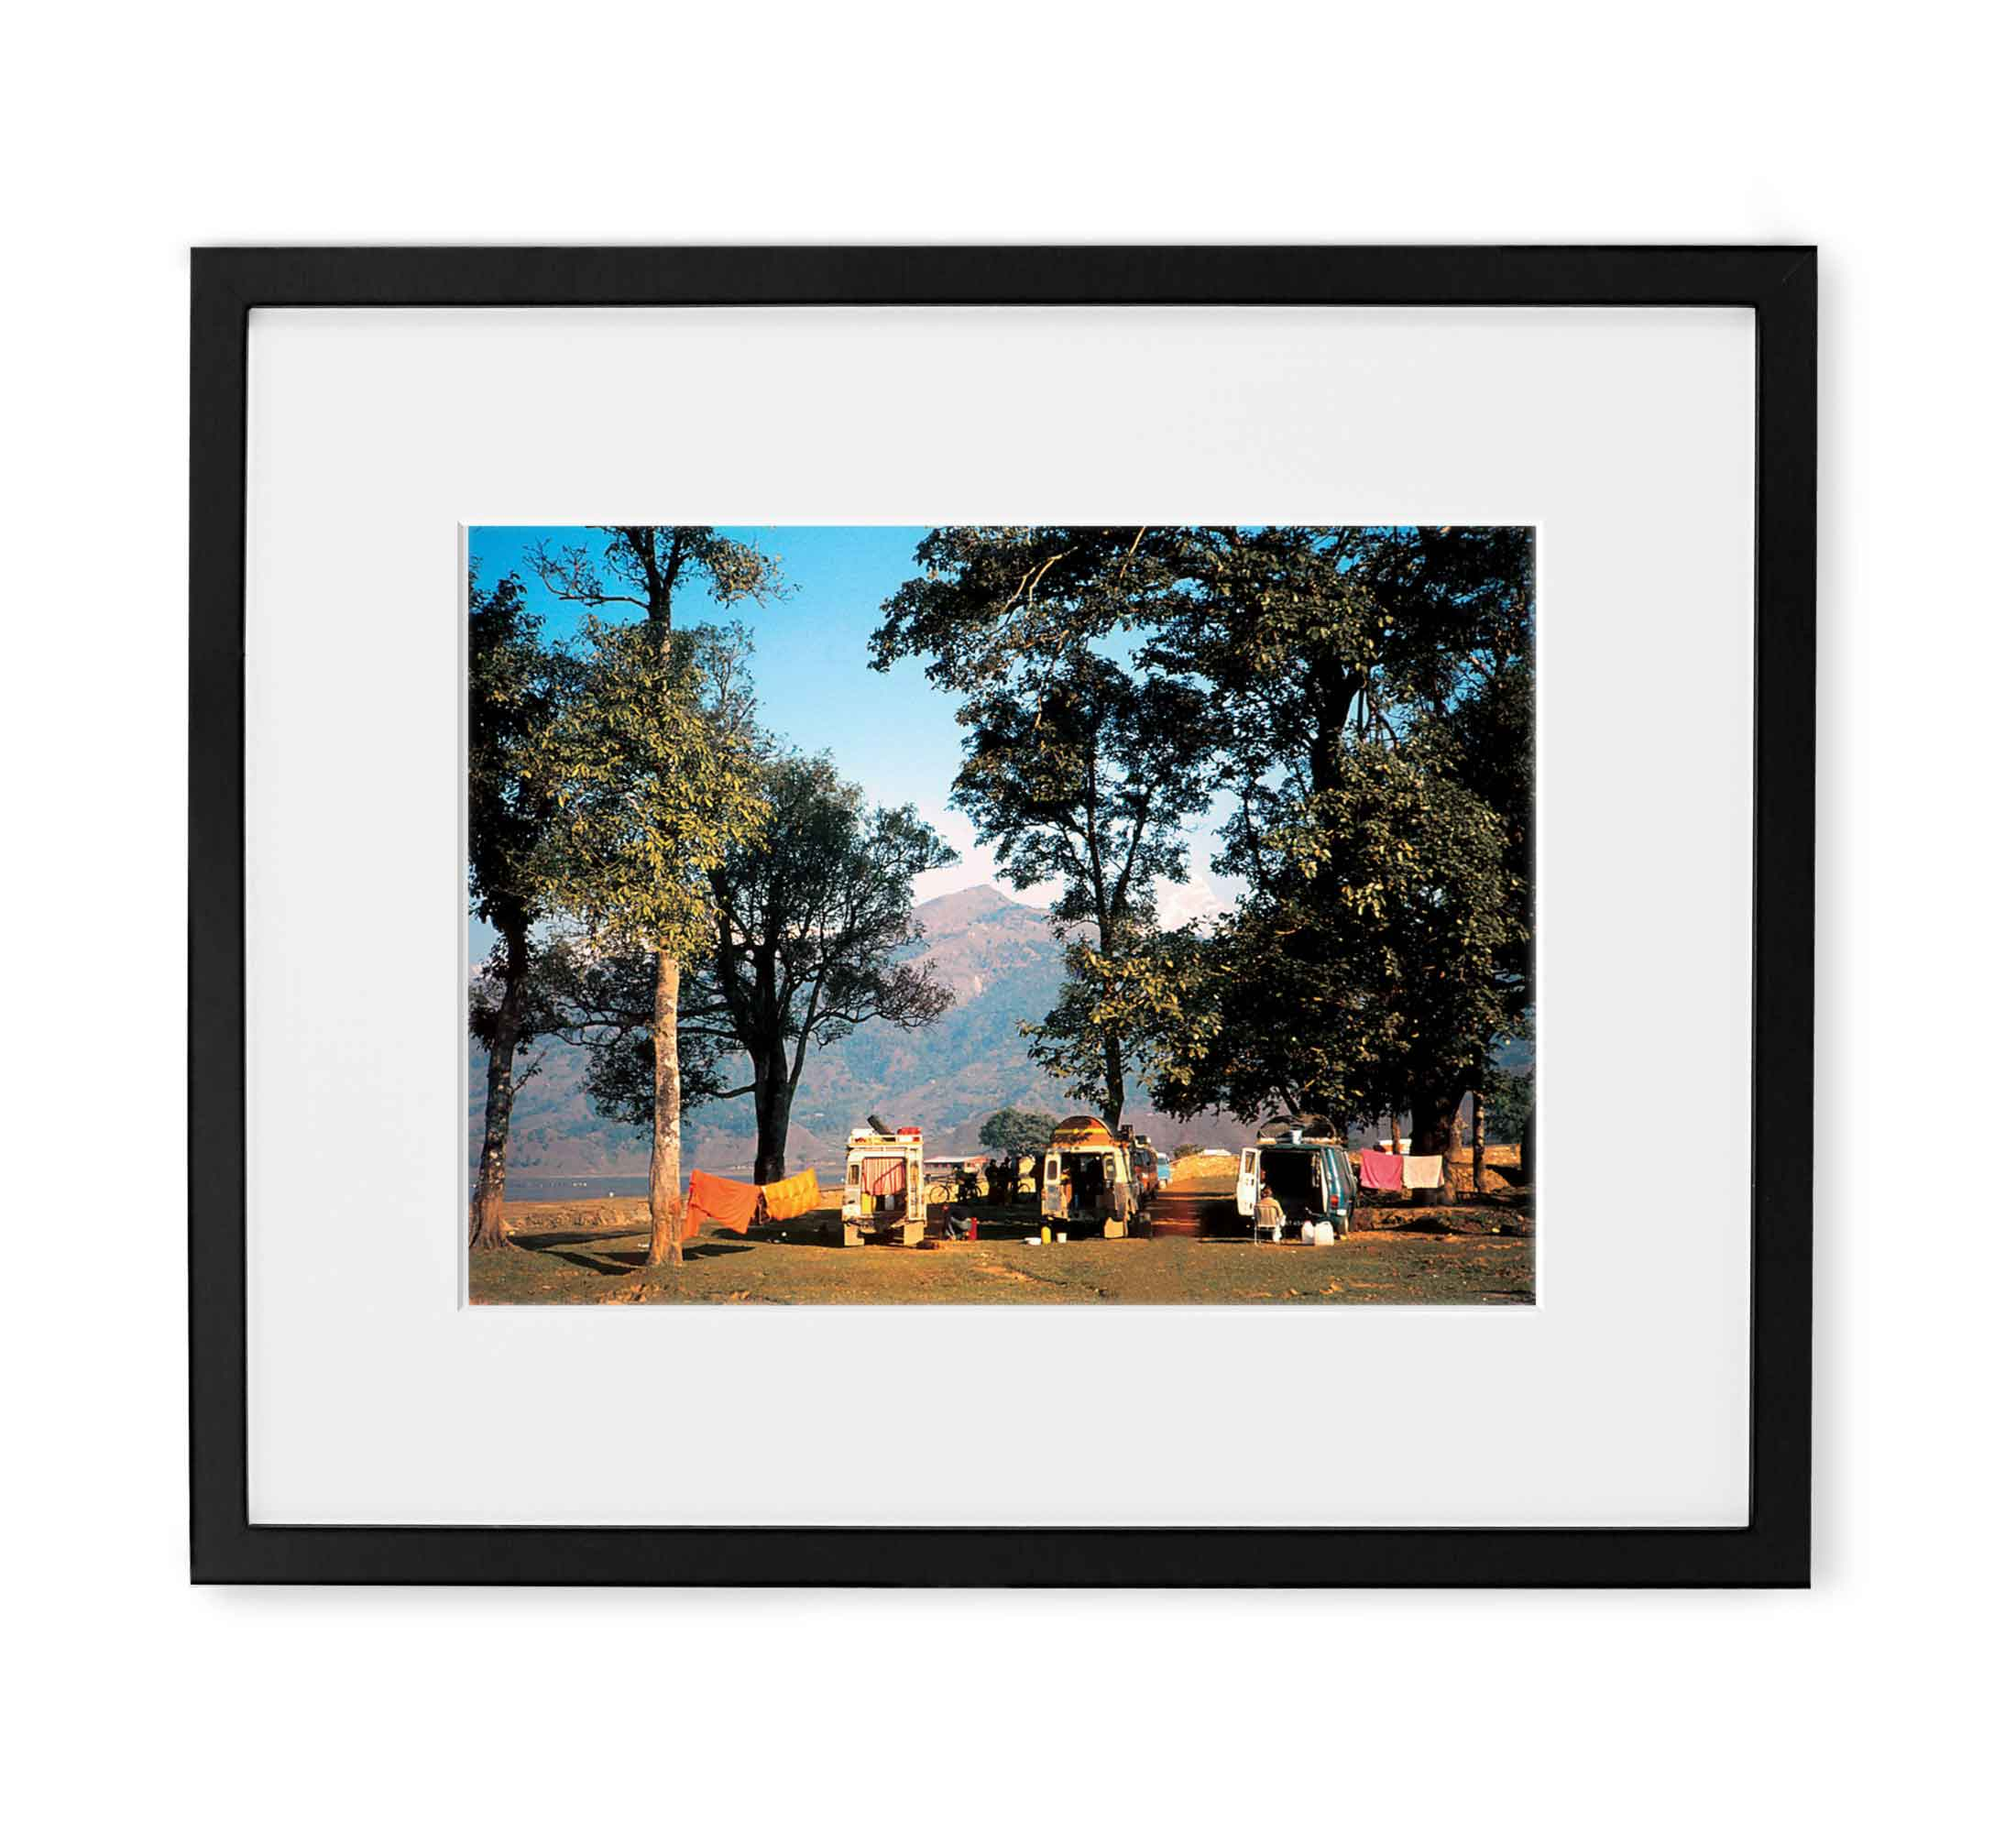 Himalayan Camp Framed Black Wood